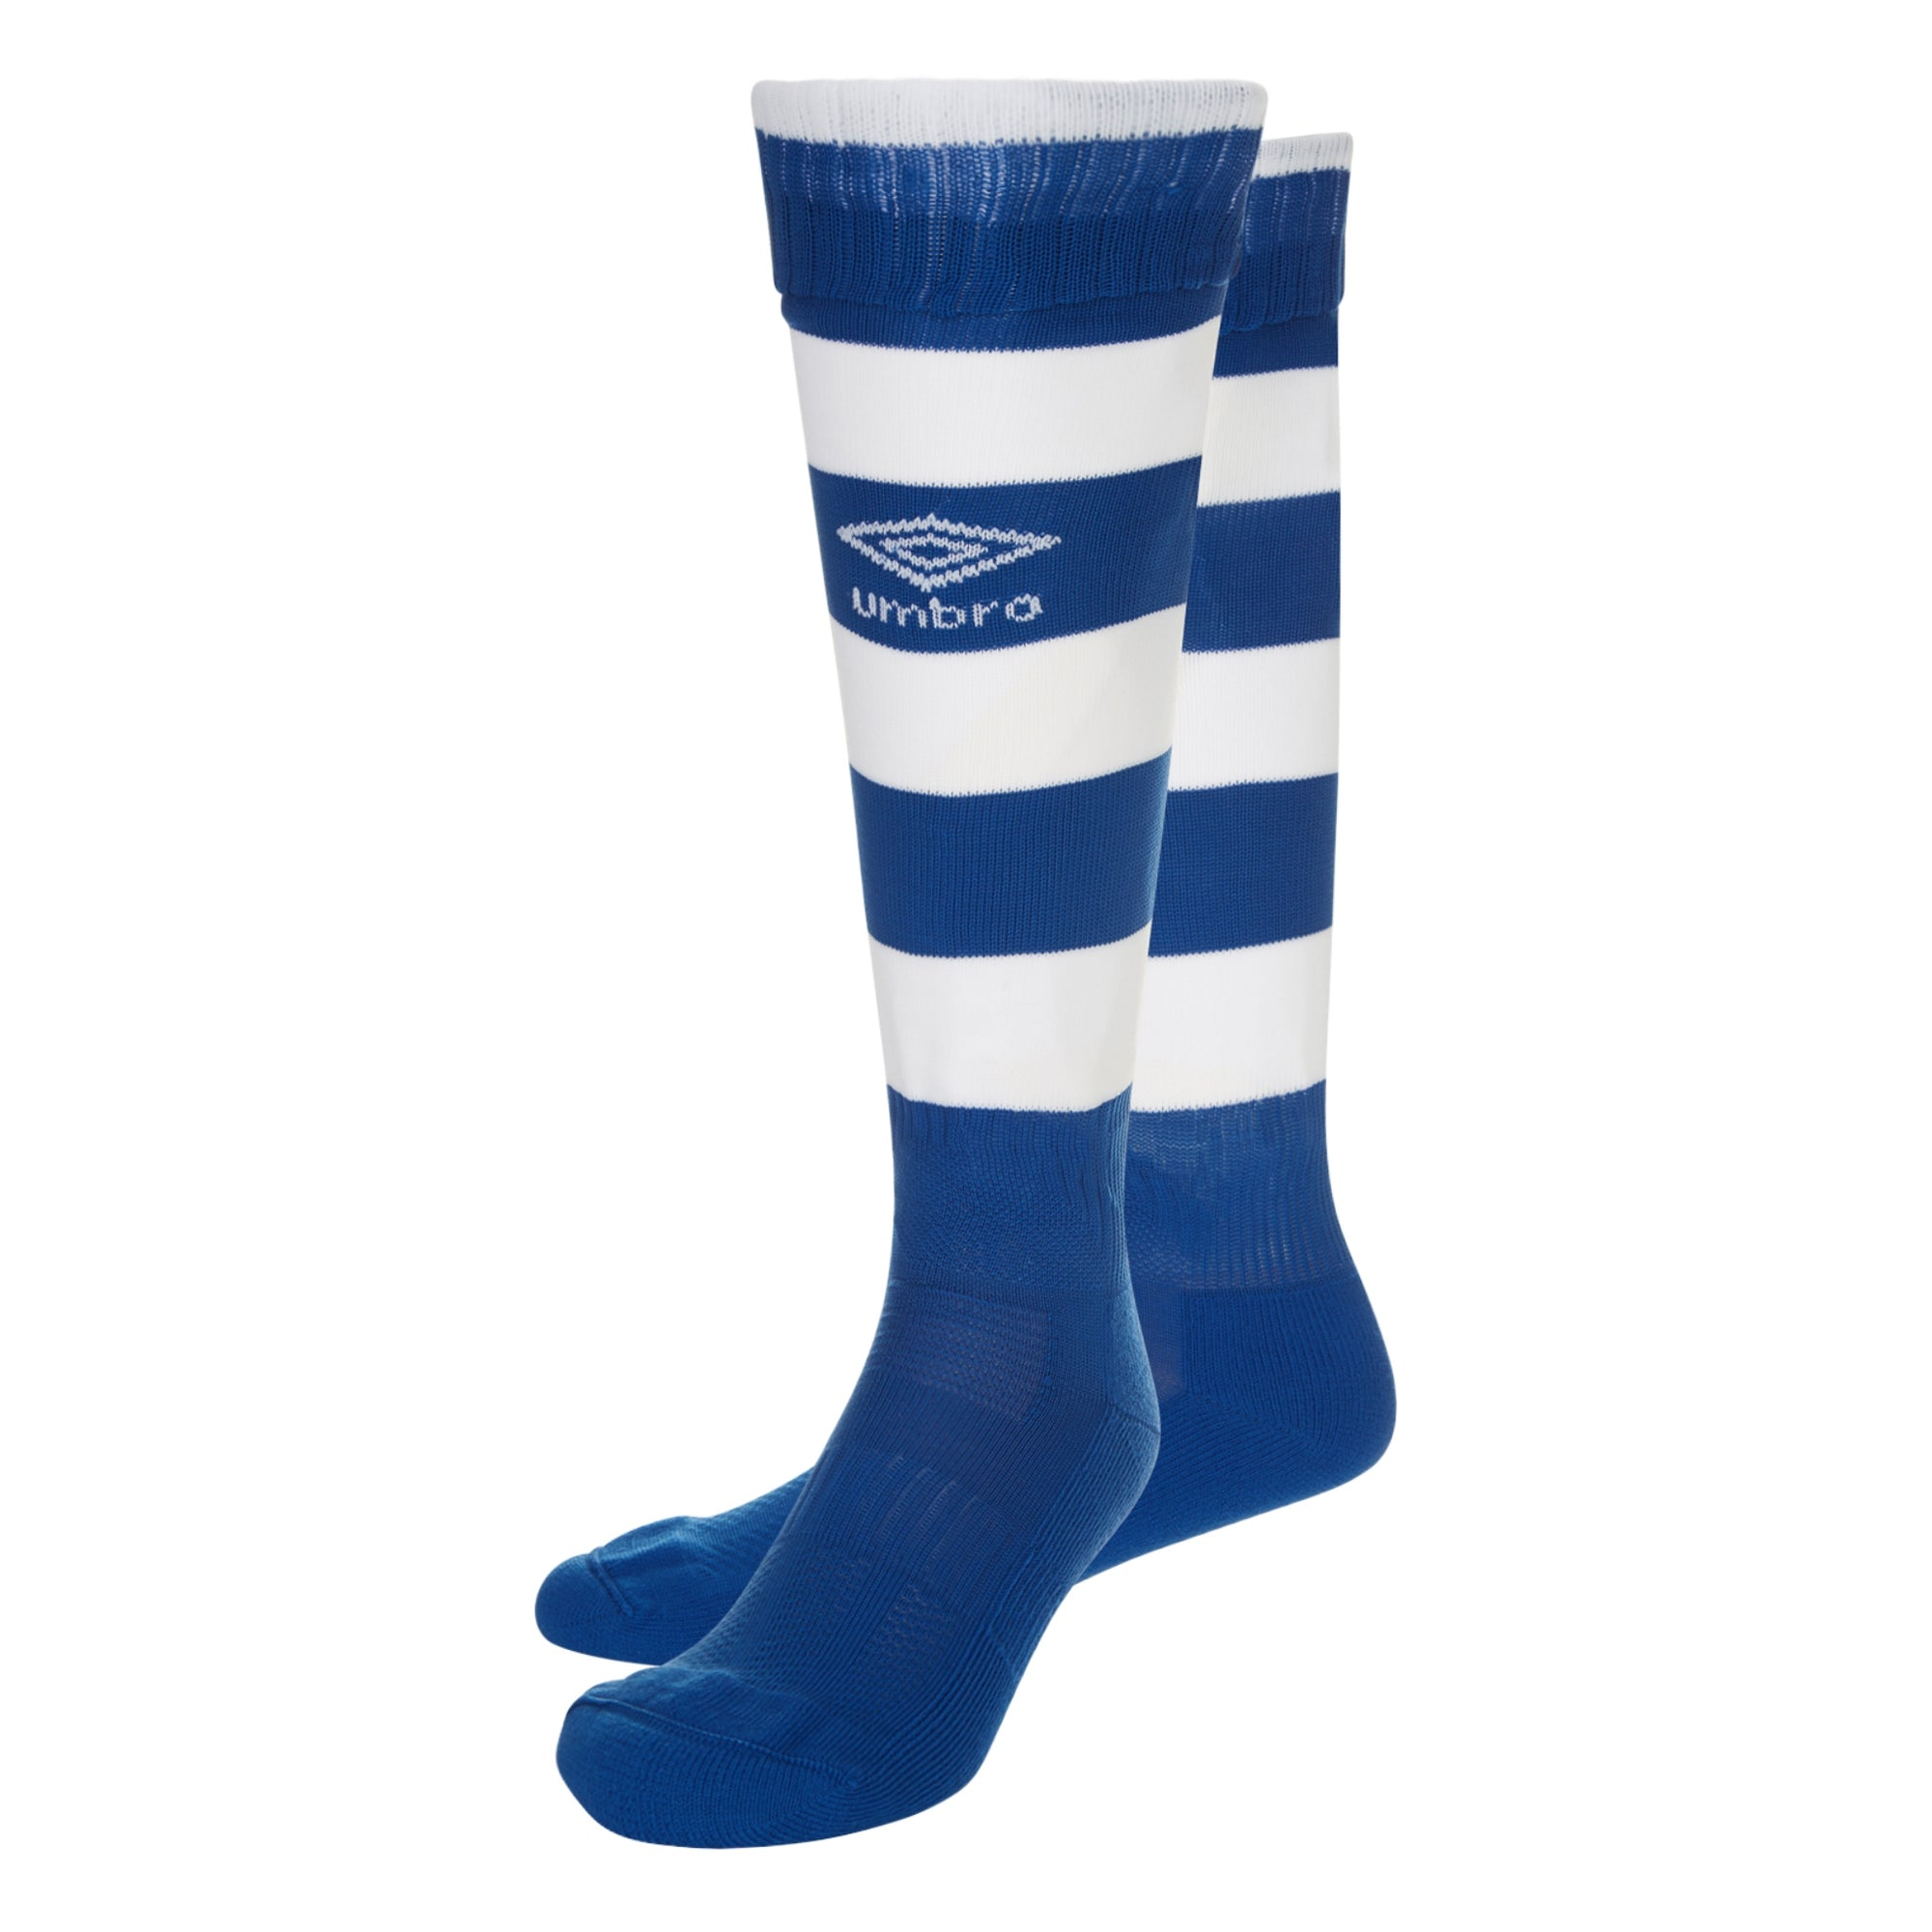 Umbro Hoop Sock - Royal/White